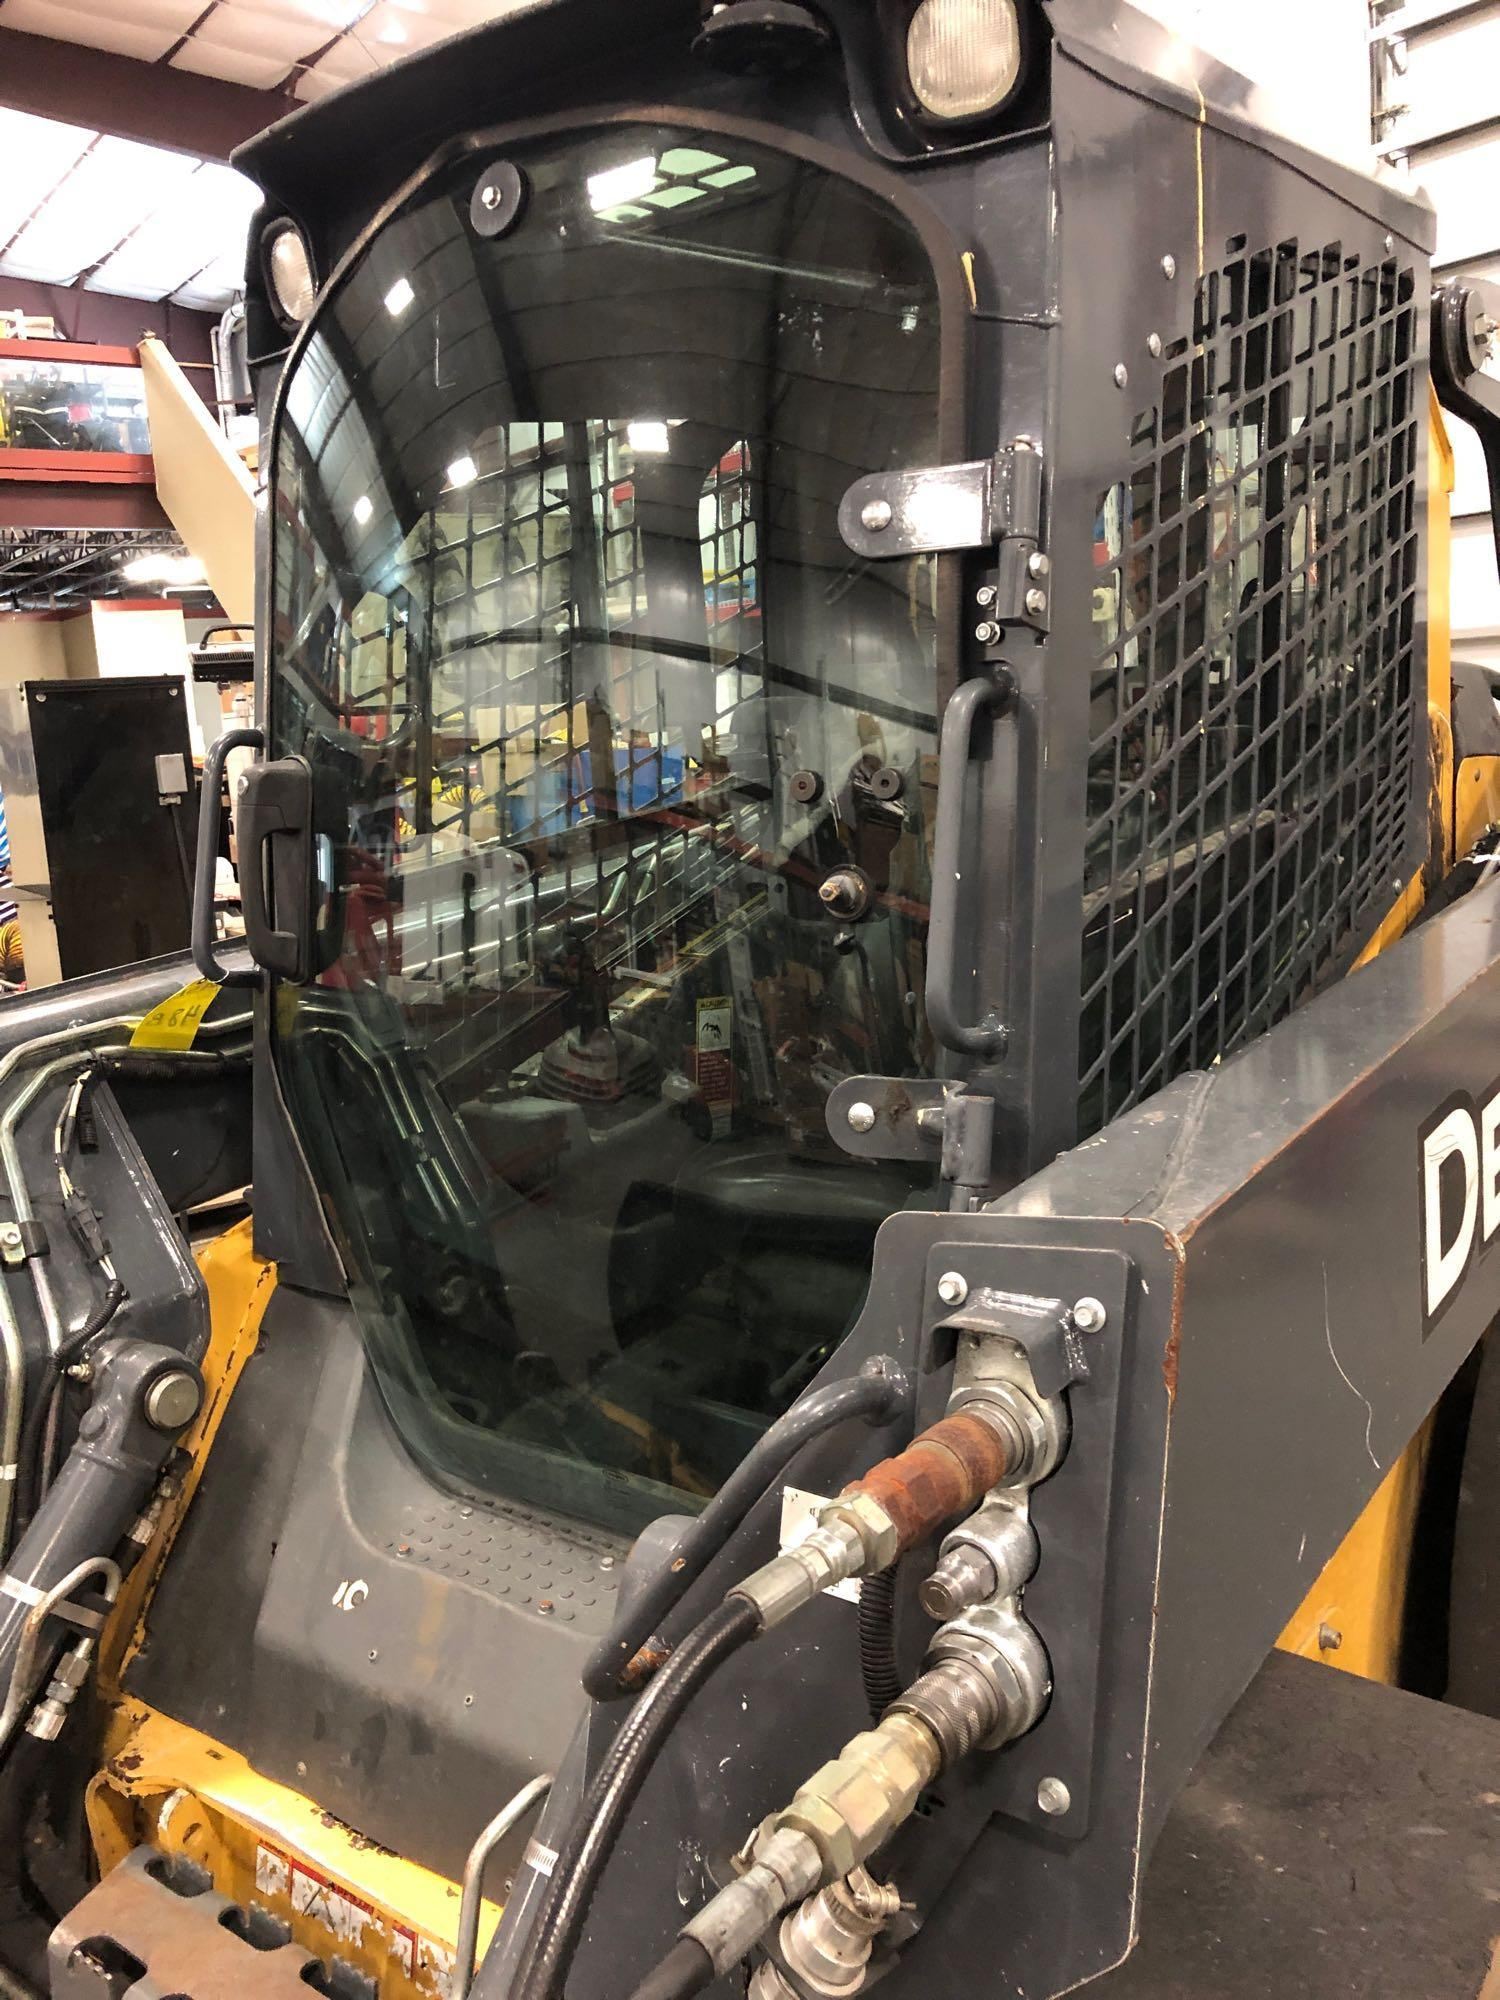 Lot 48B - 2015 JOHN DEERE 320E SKID STEER, ENCLOSED CAB, HEAT AND A/C 2 SPEED HYDRAULIC COUPLER, RUNS AND OPER